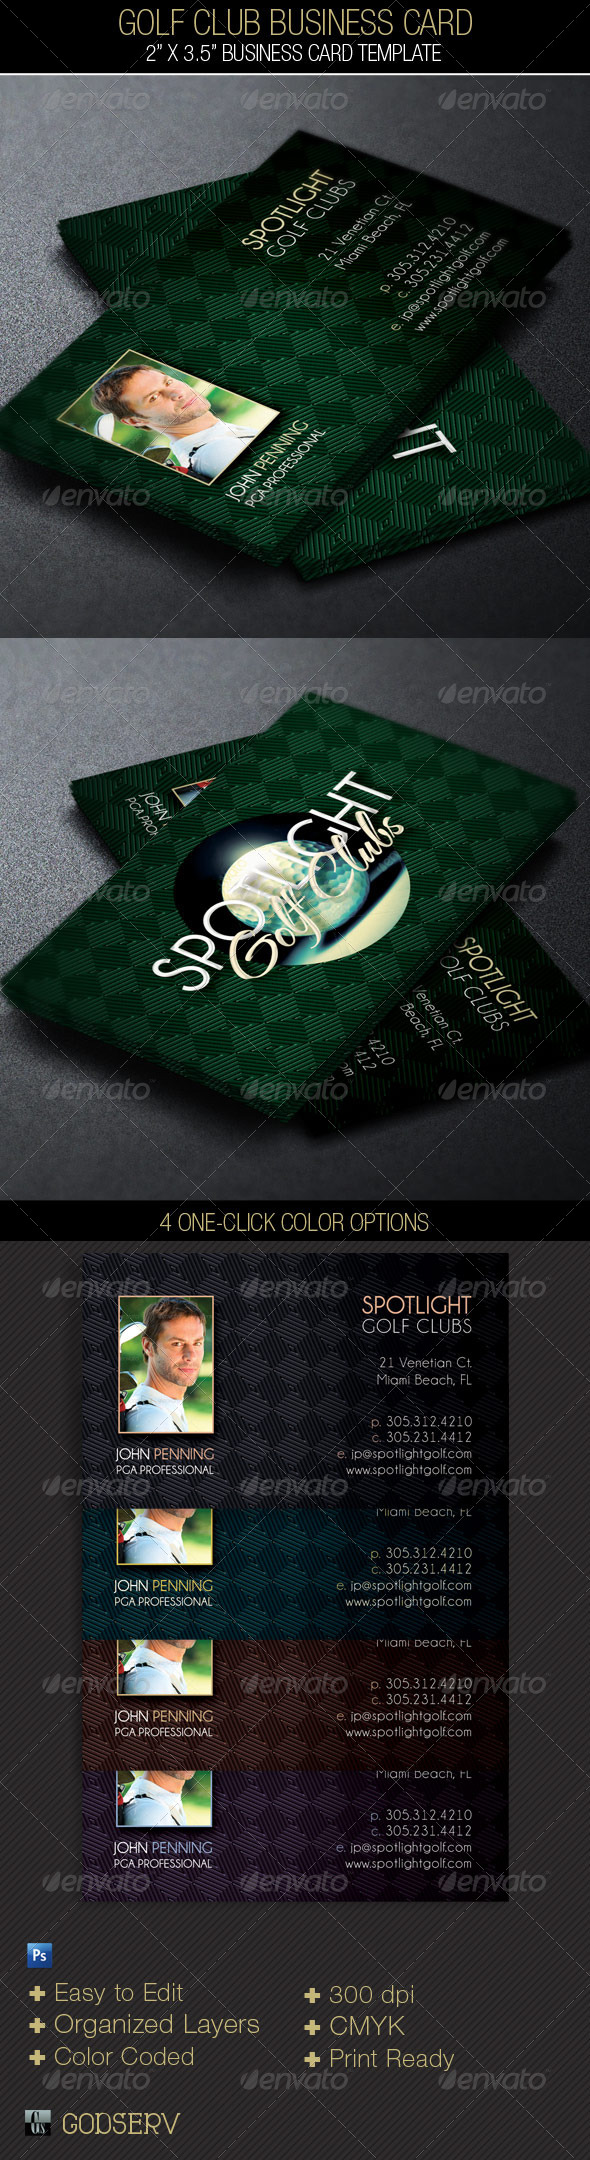 GraphicRiver Golf Club Business Card 4672853